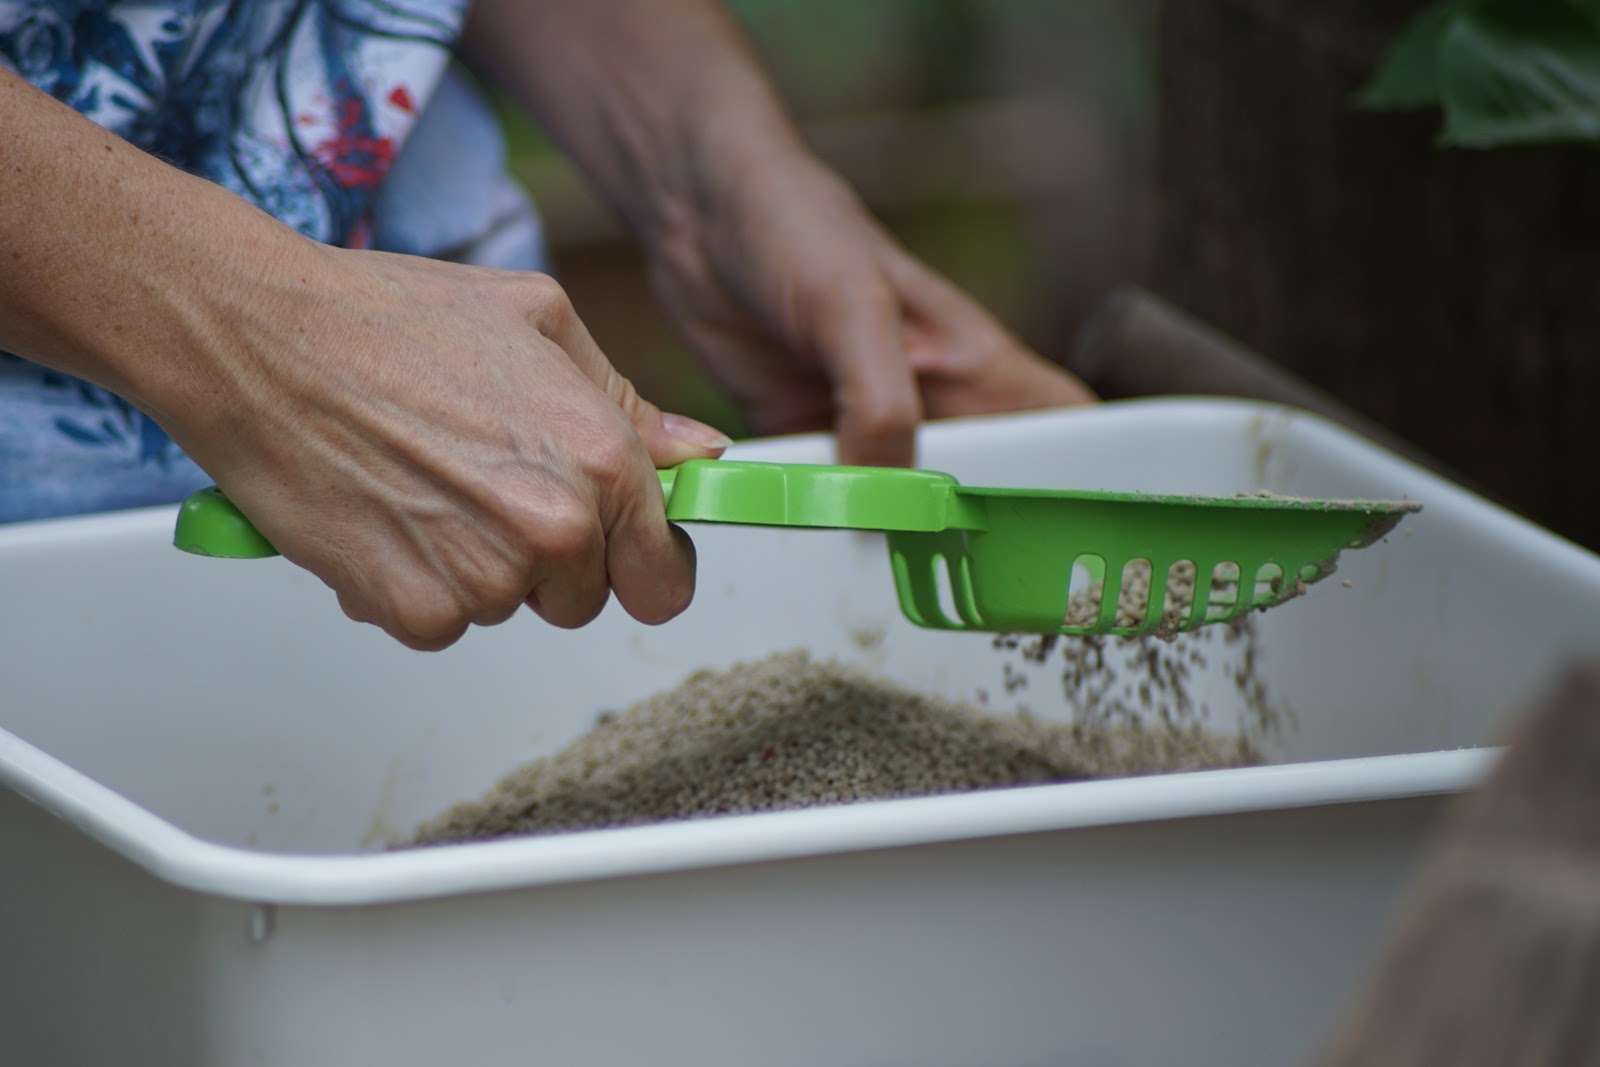 A person scoops cat litter.